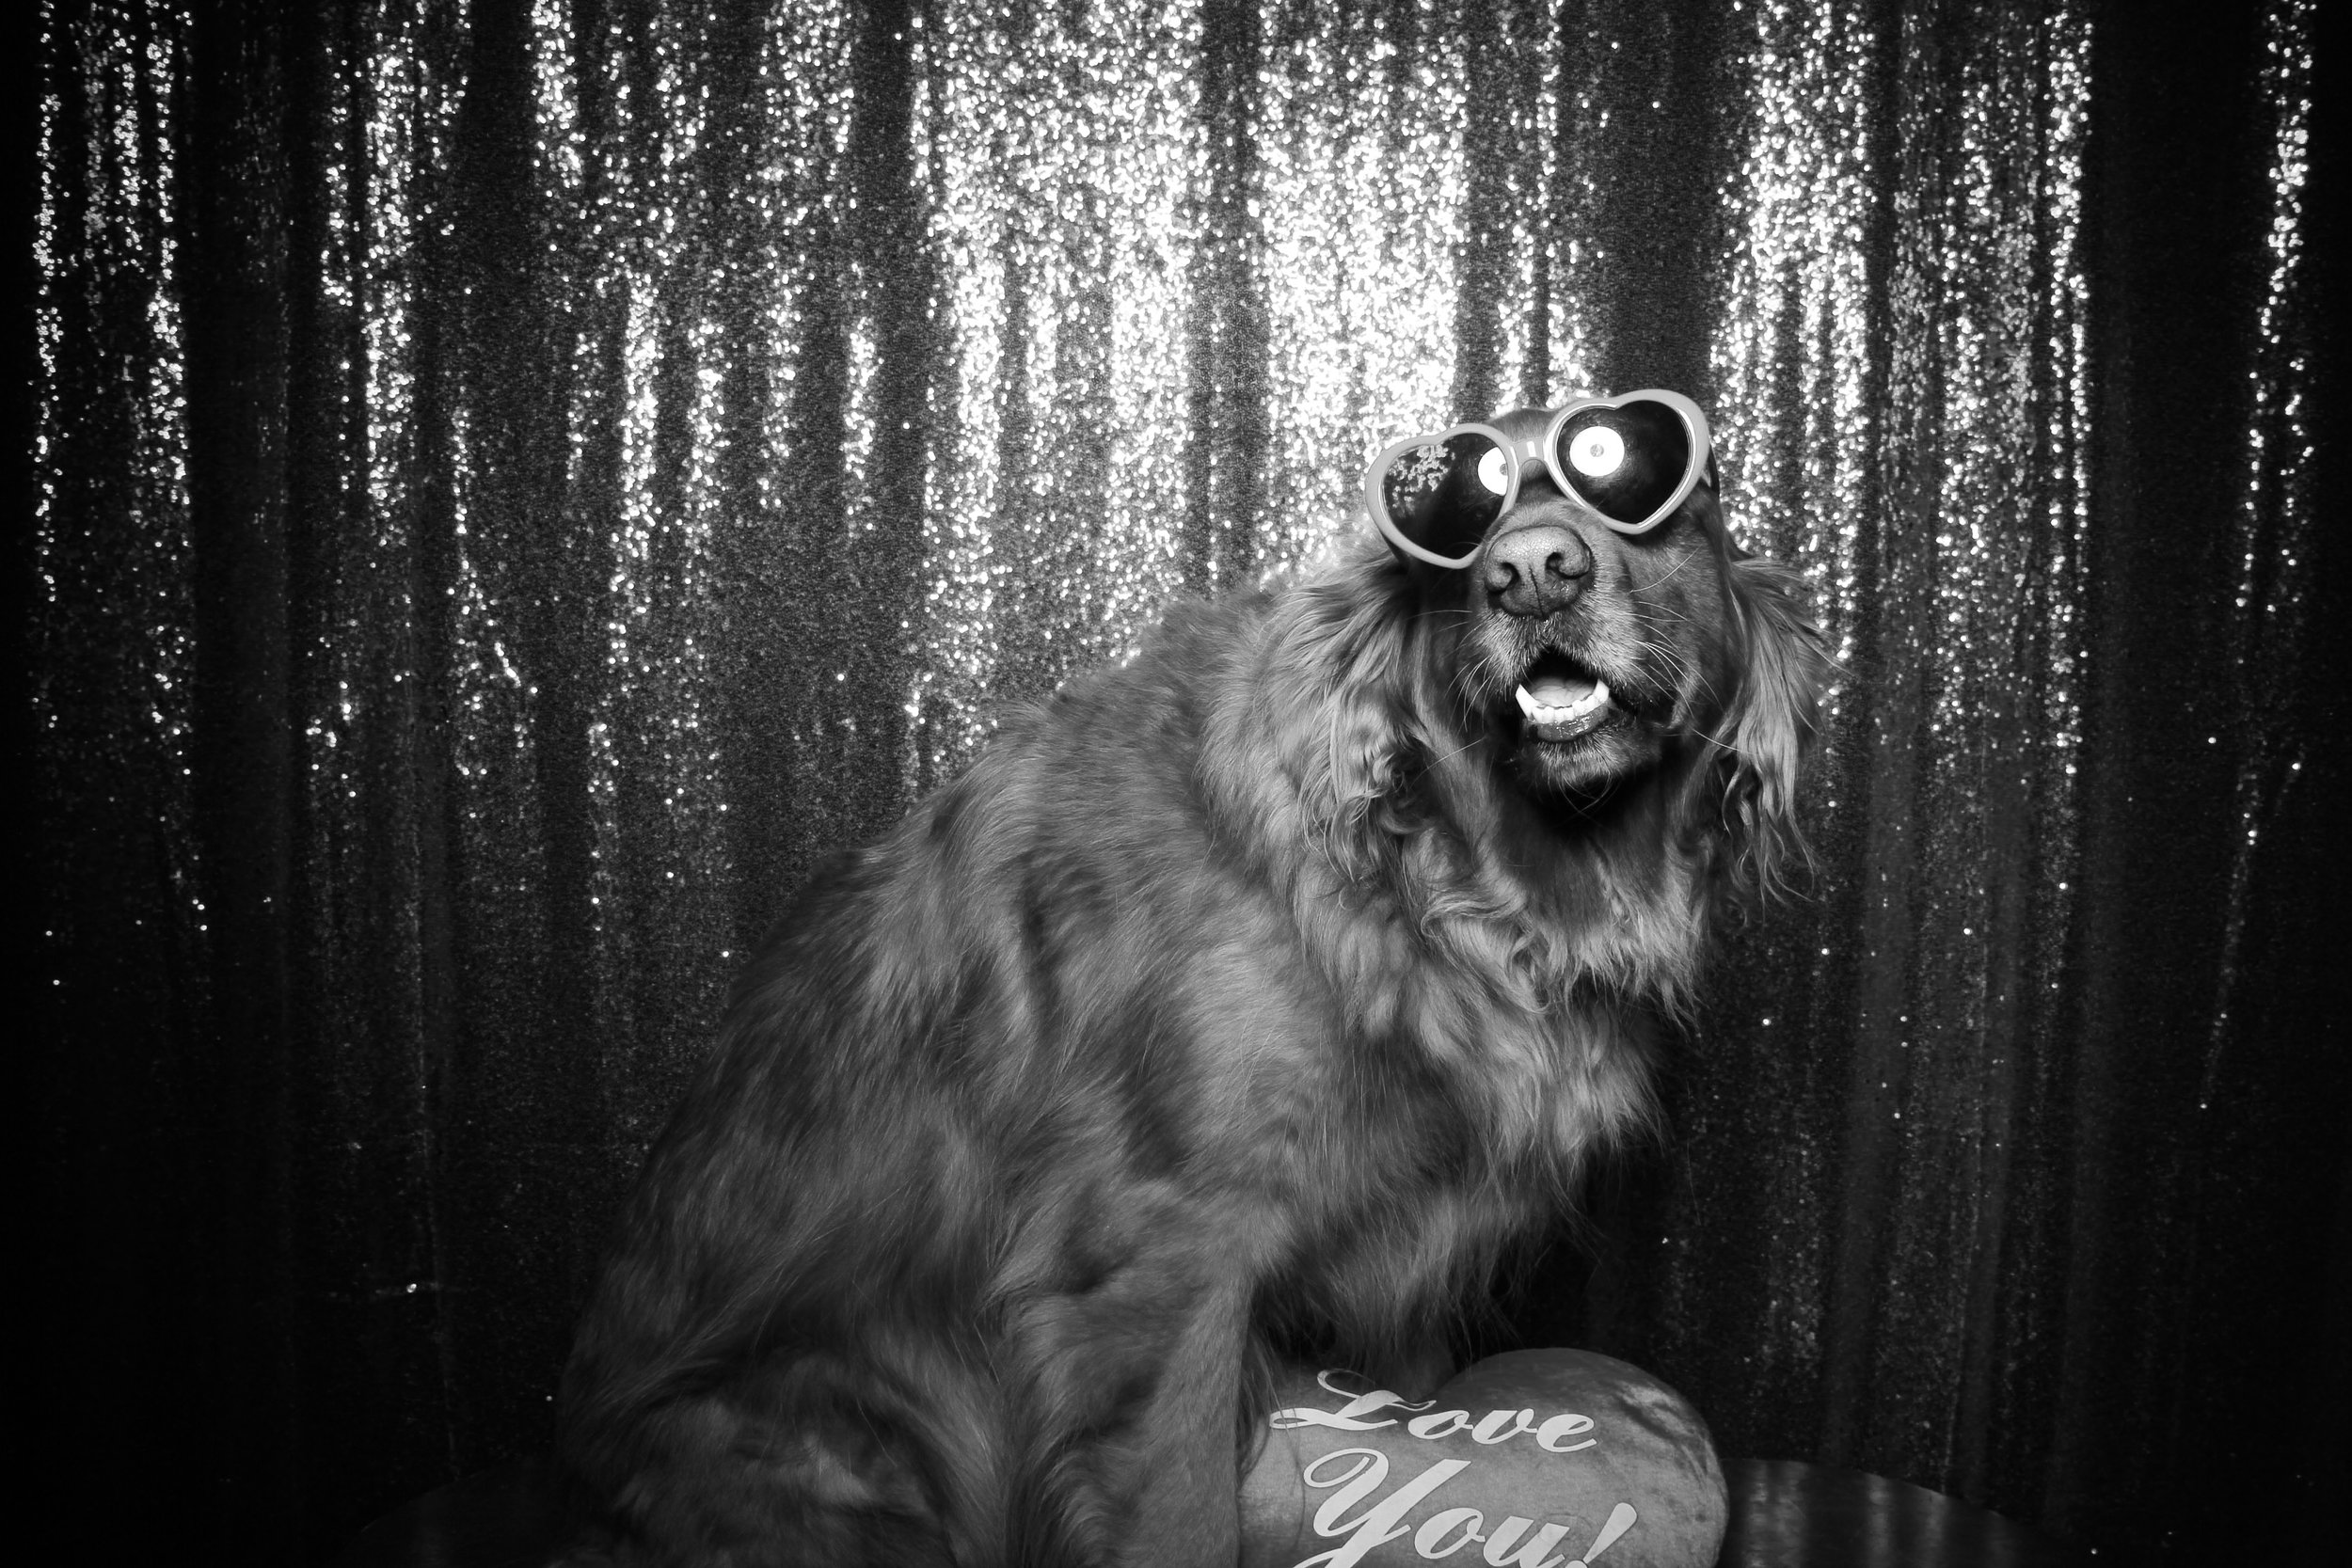 Chicago_Vintage_Photobooth_Valentines_Day_Dog_18.jpg